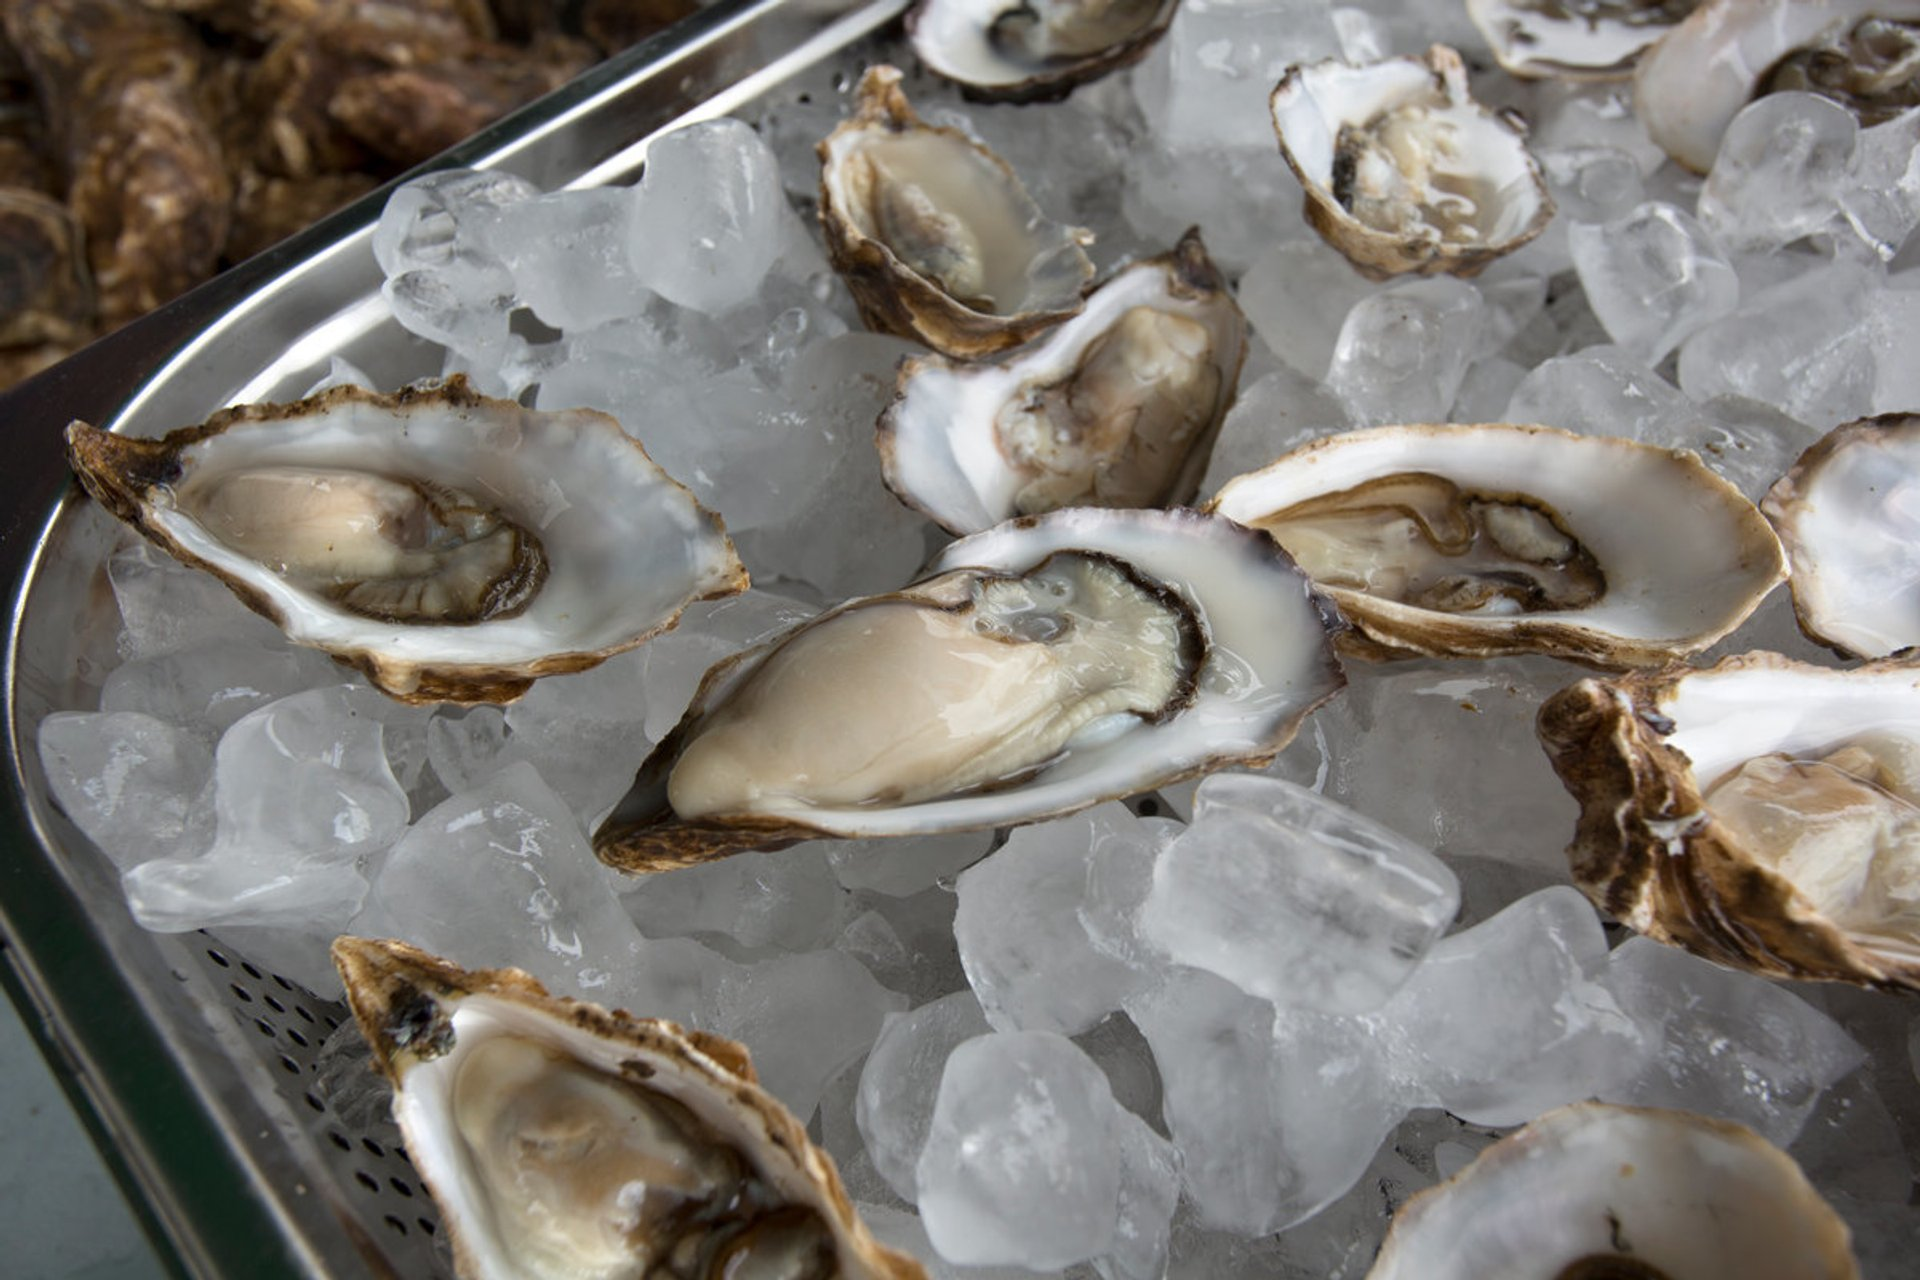 Oysters in Scotland - Best Season 2020